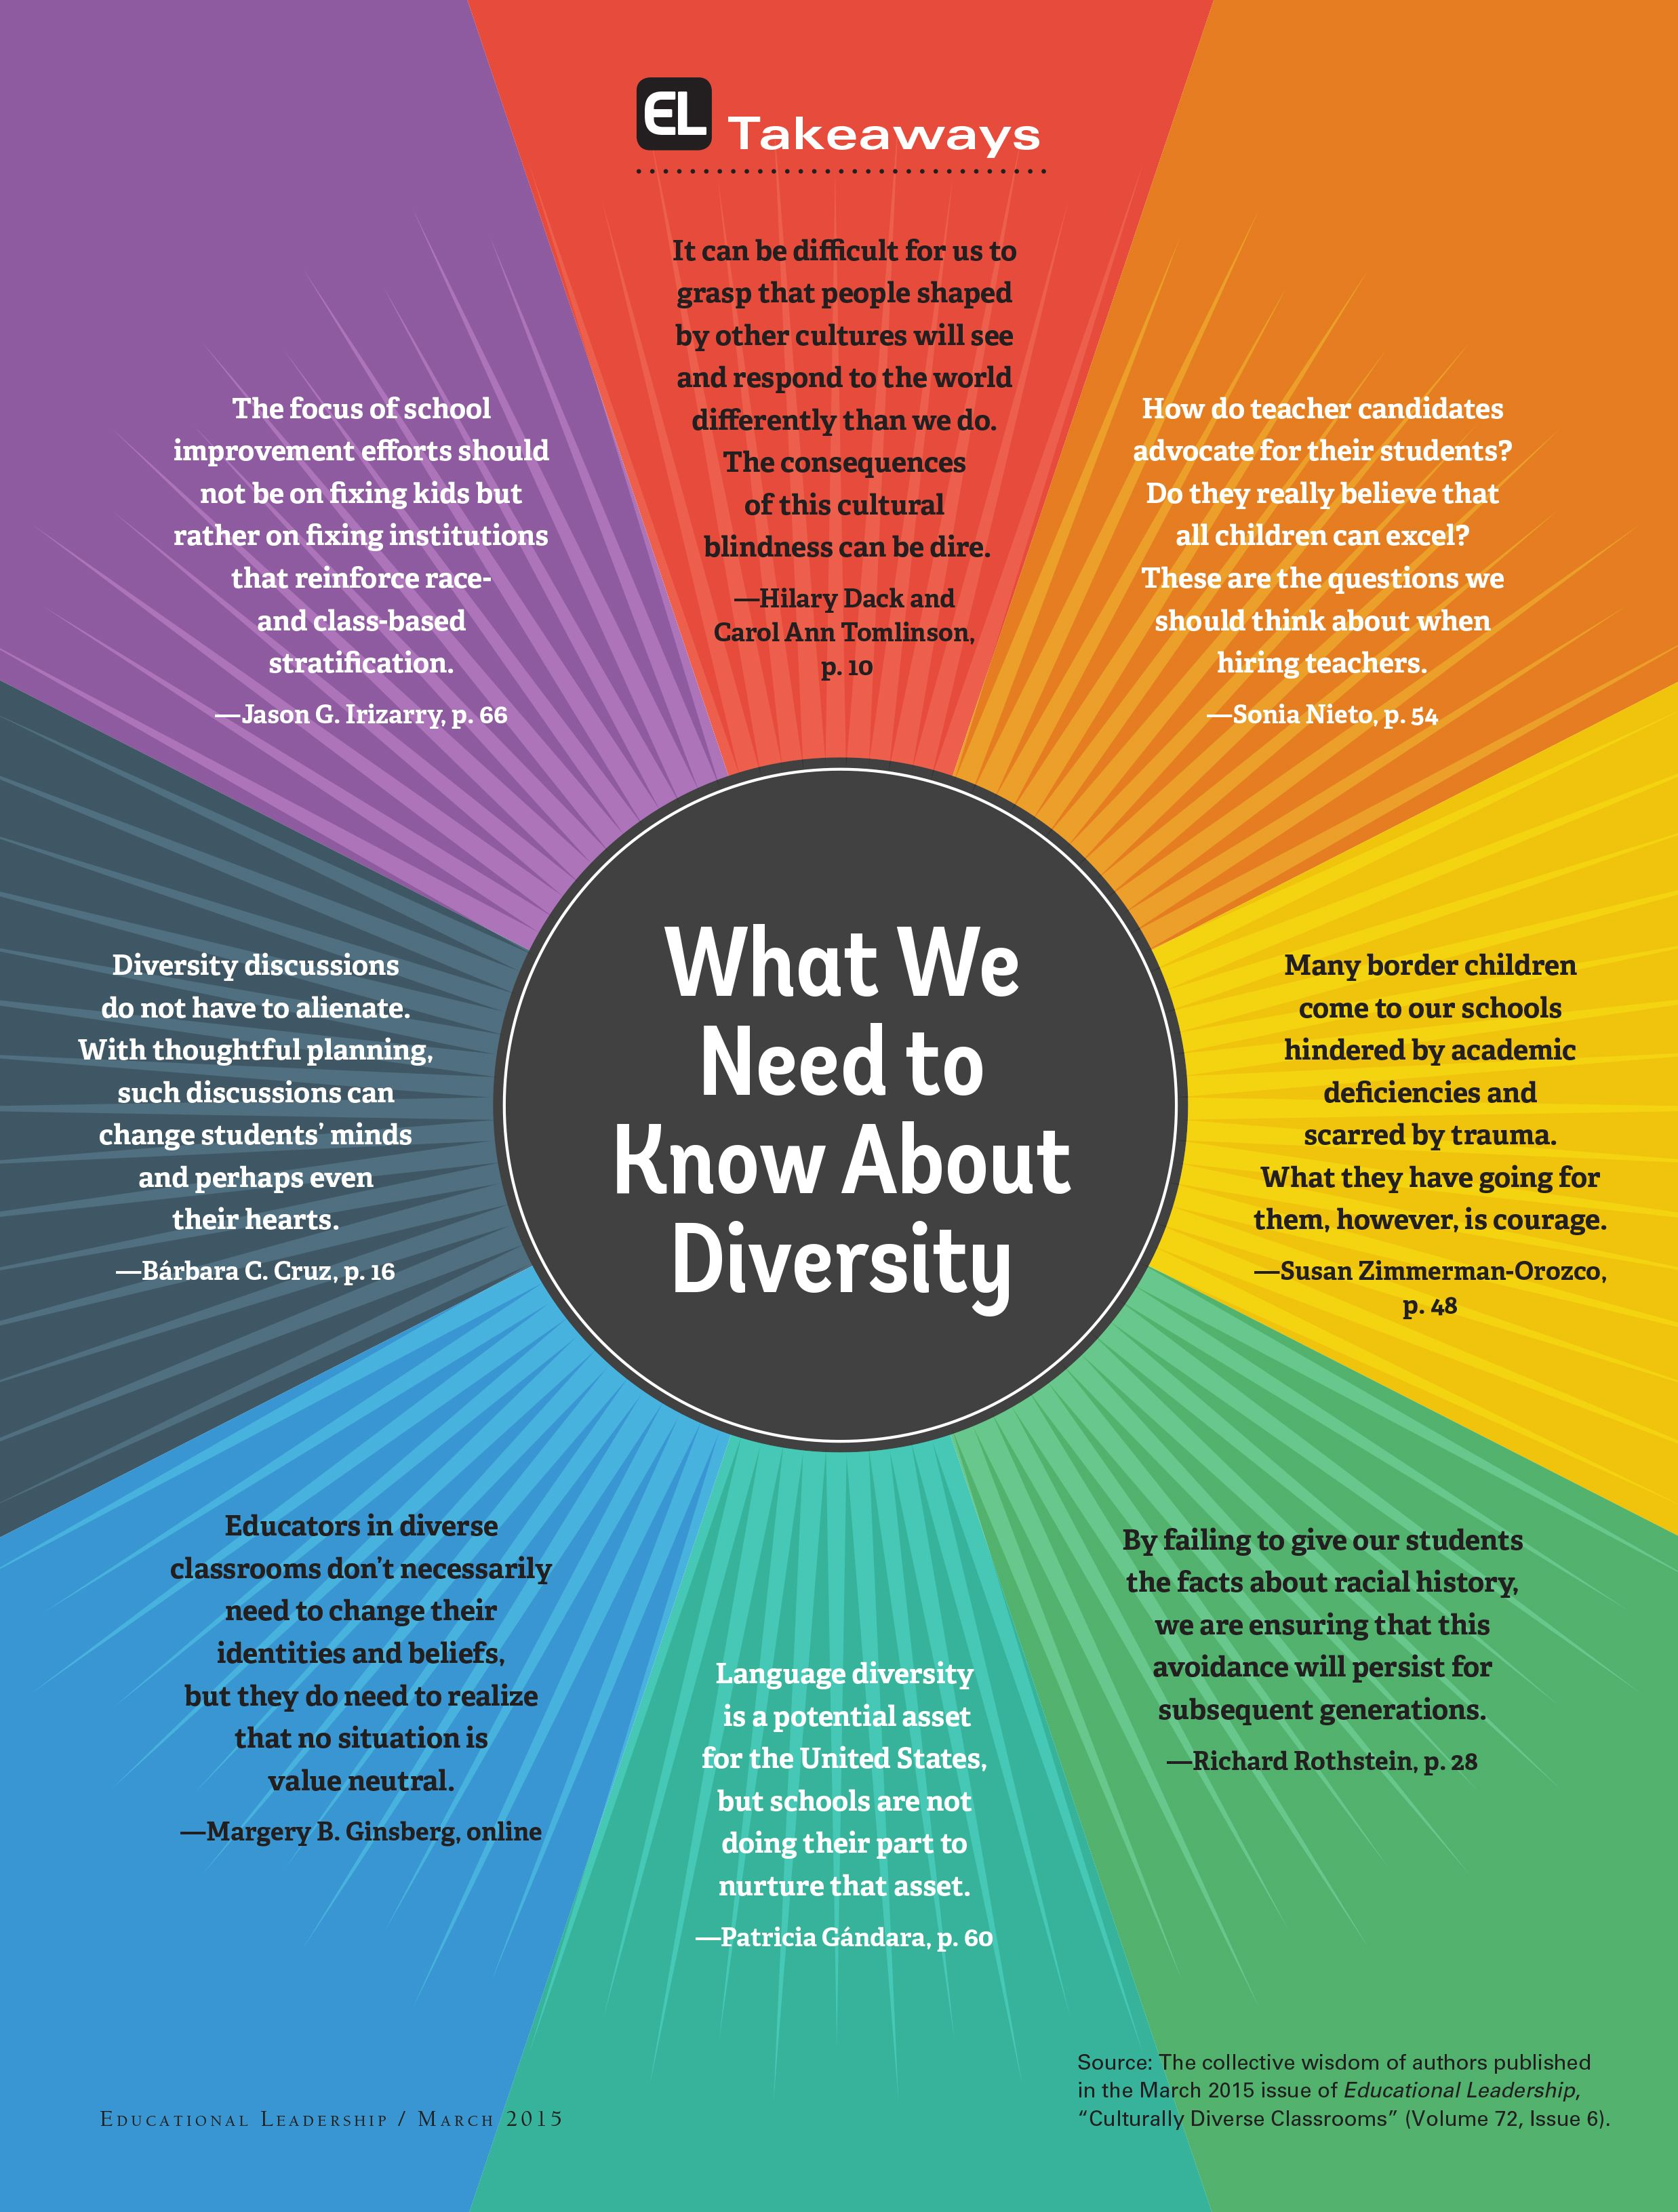 Here are eight takeaways that share what we need to know about diversity from the March issue of Educational Leadership.